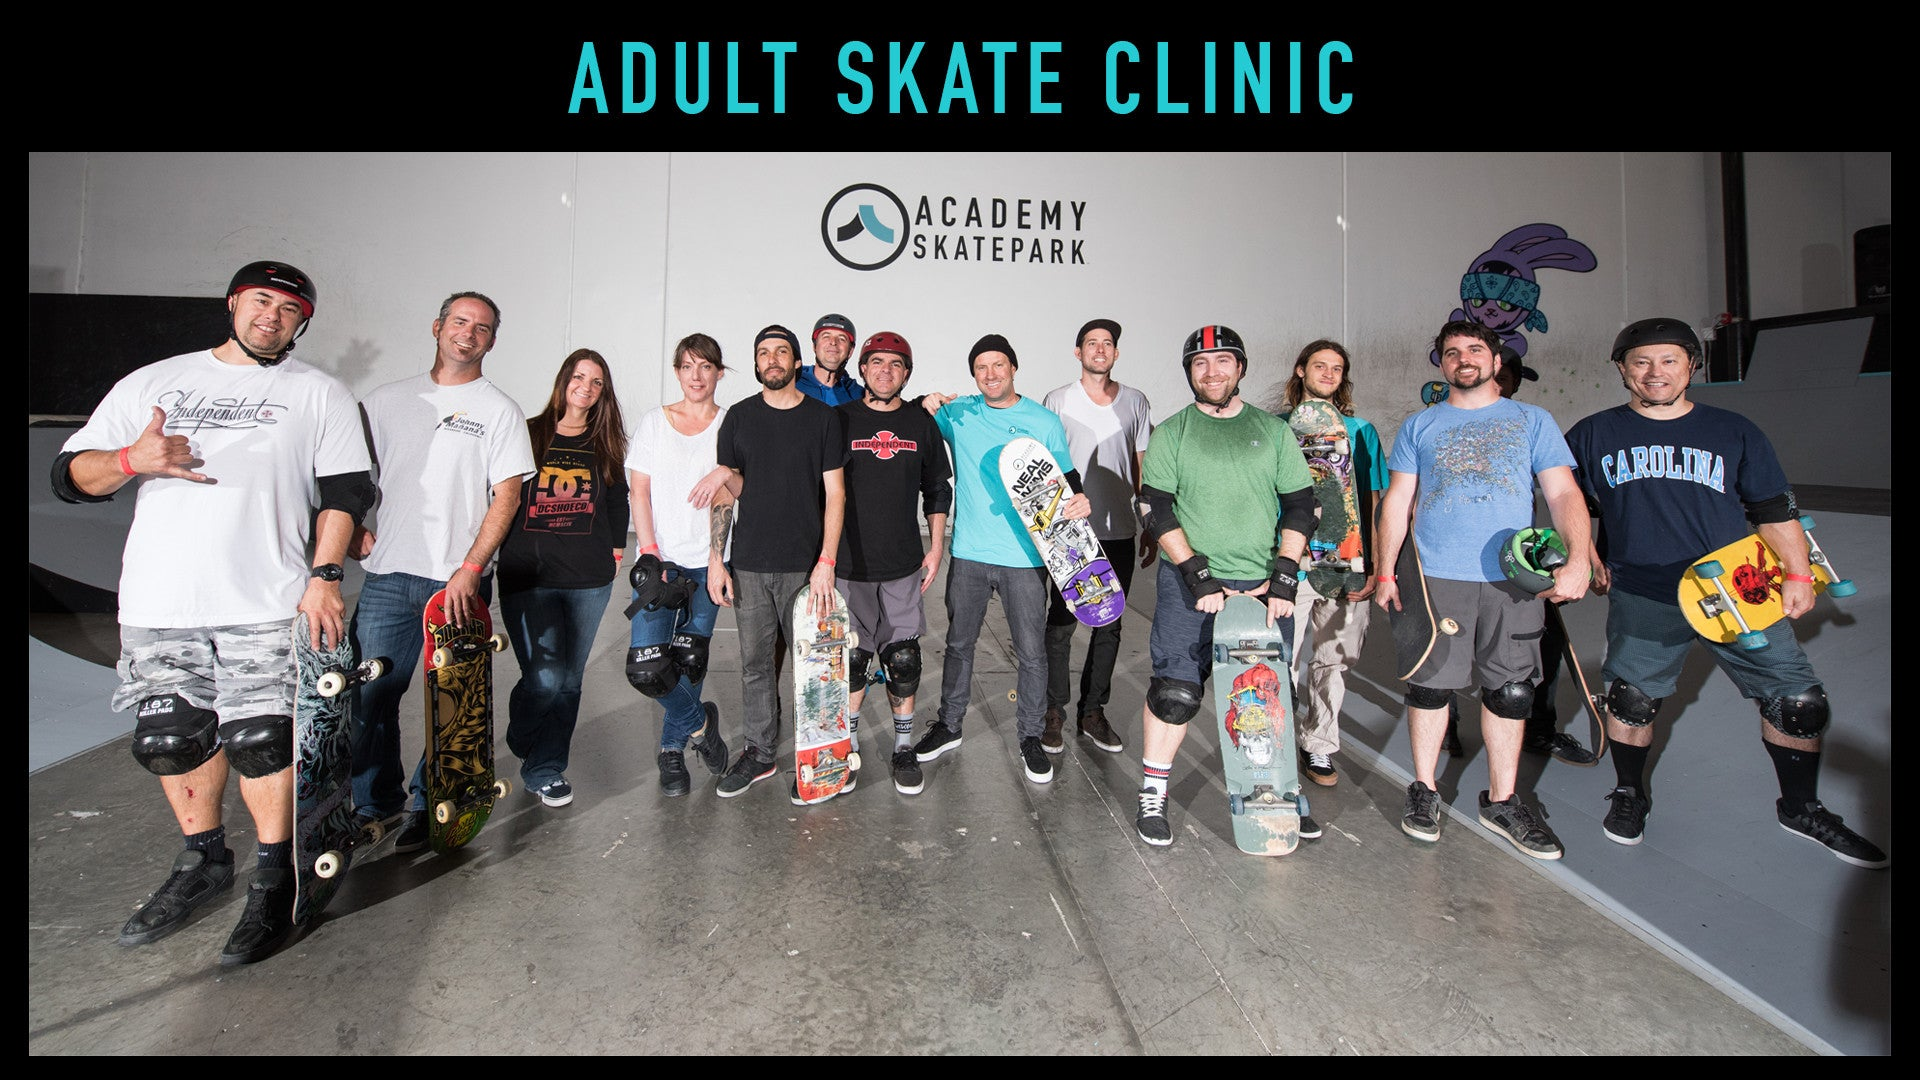 Adult Skate Clinic